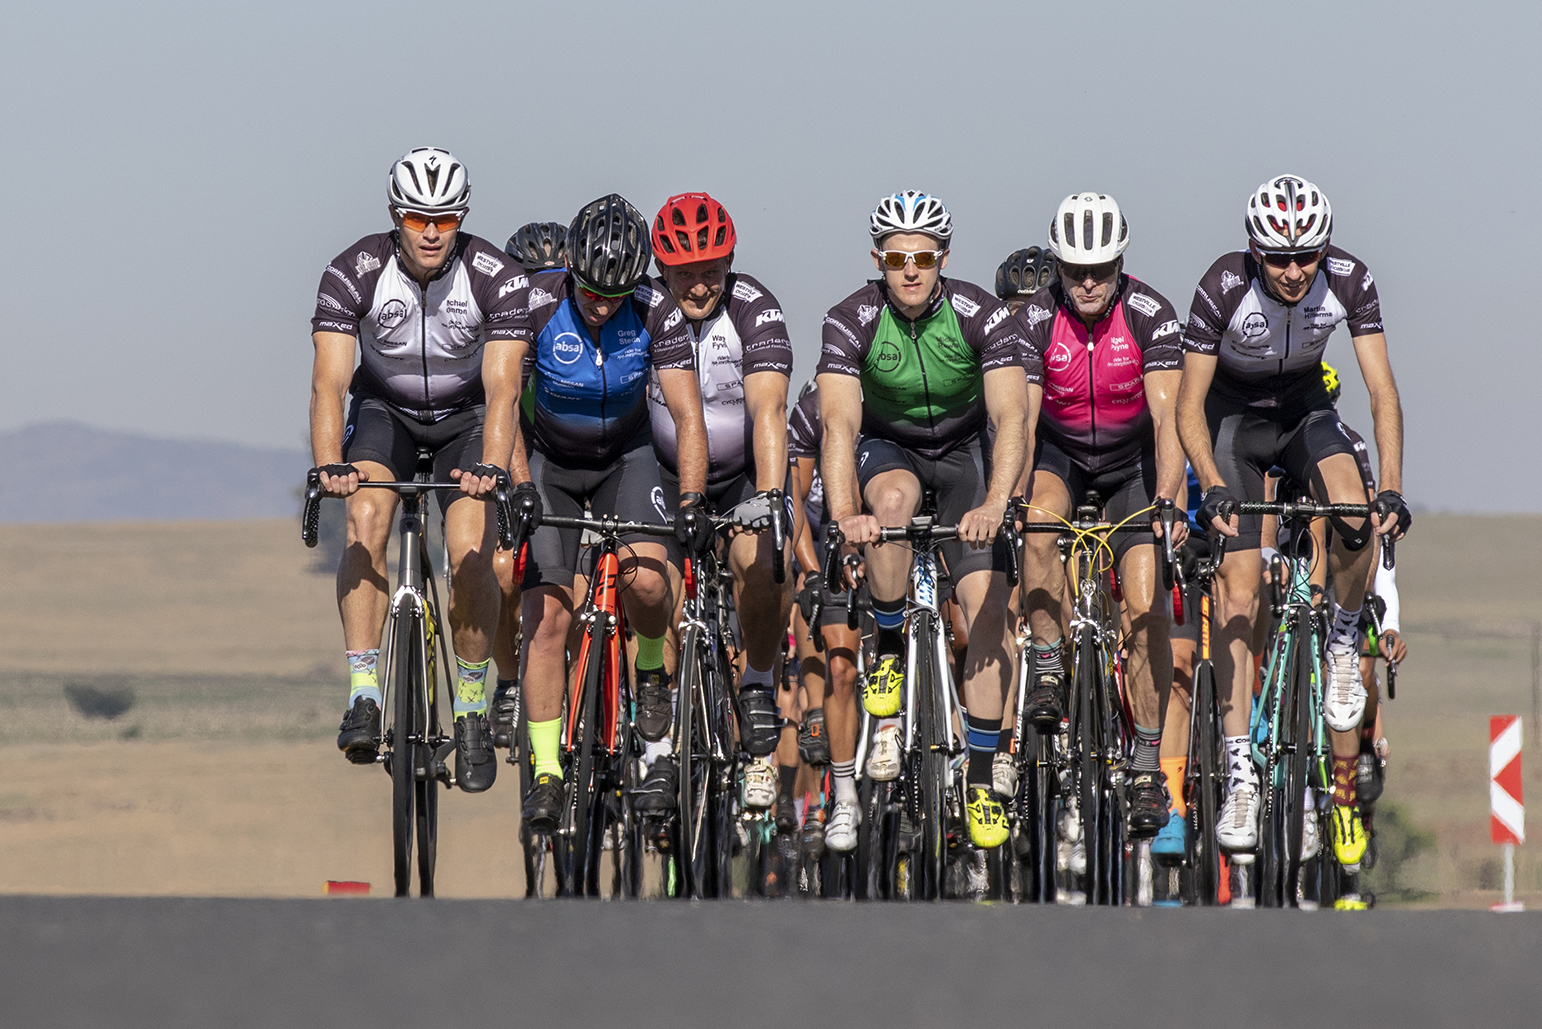 City Logistics, Ride for MRP Foundation, Ride for MRP, Sponsorship